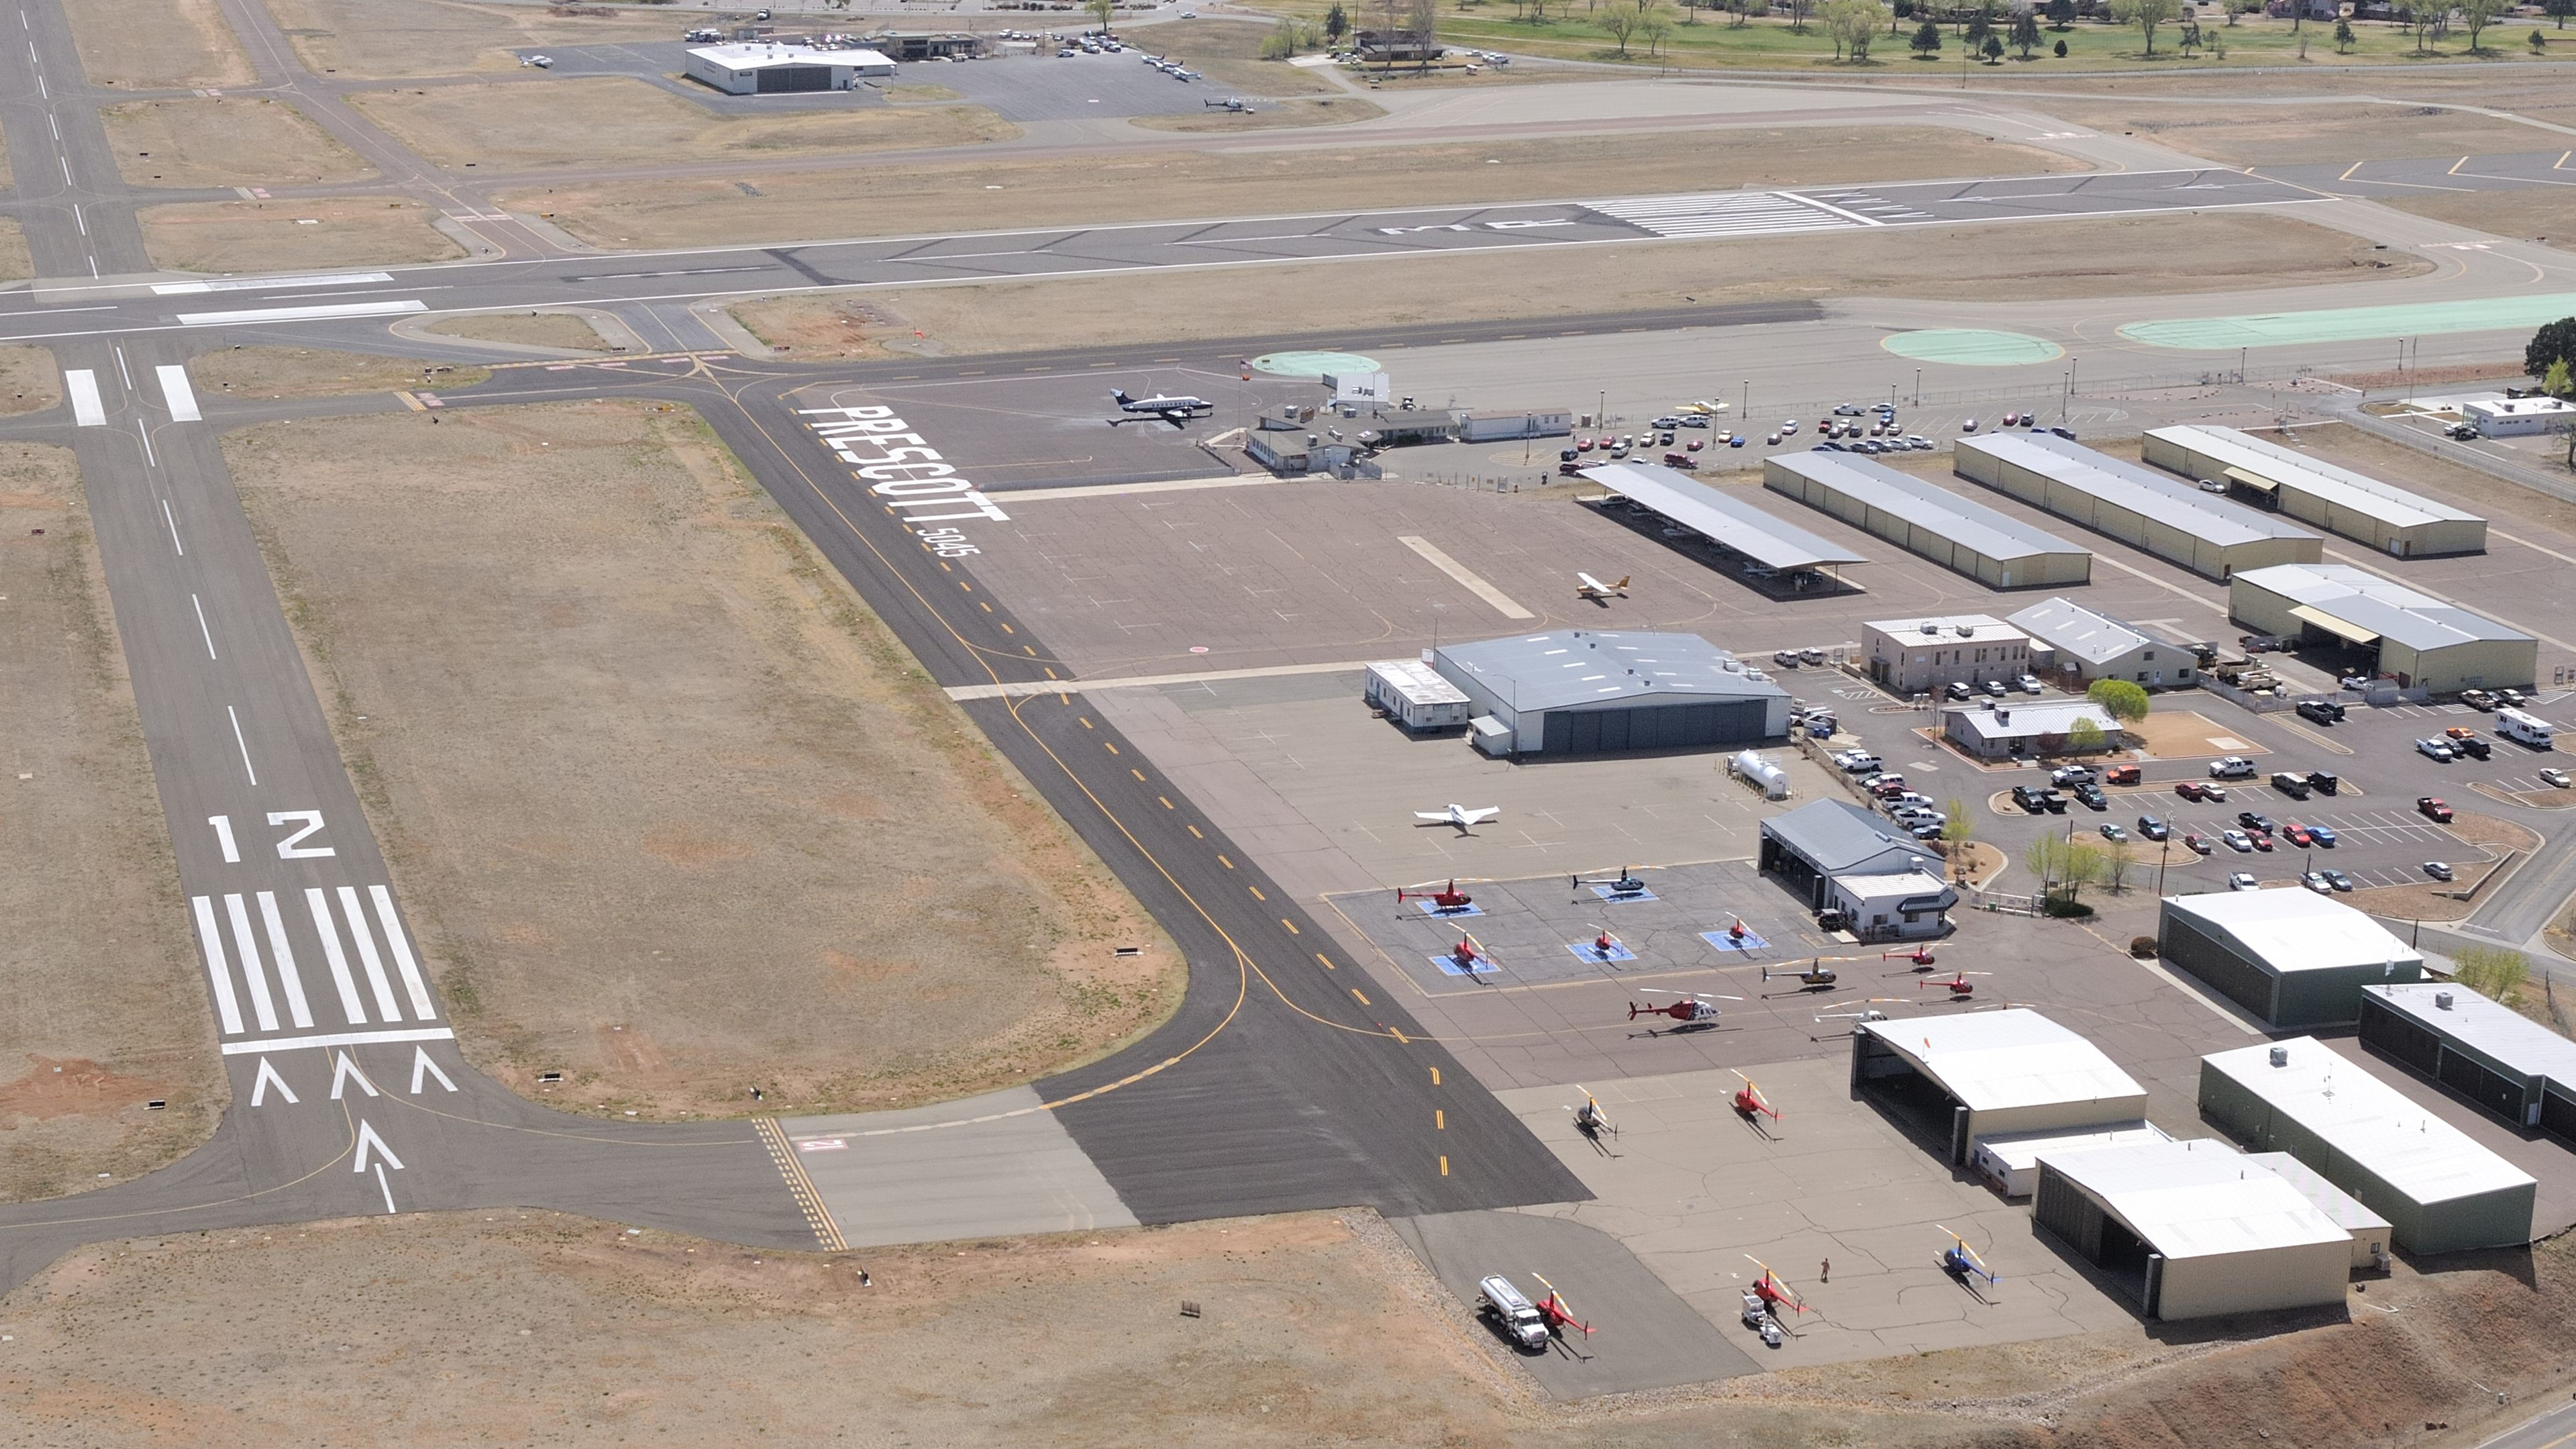 AOPA Fly-In activities at Prescott, Arizona, will be centered on the Guidance Aviation ramp, shown at lower right. Photo by Mike Collins.